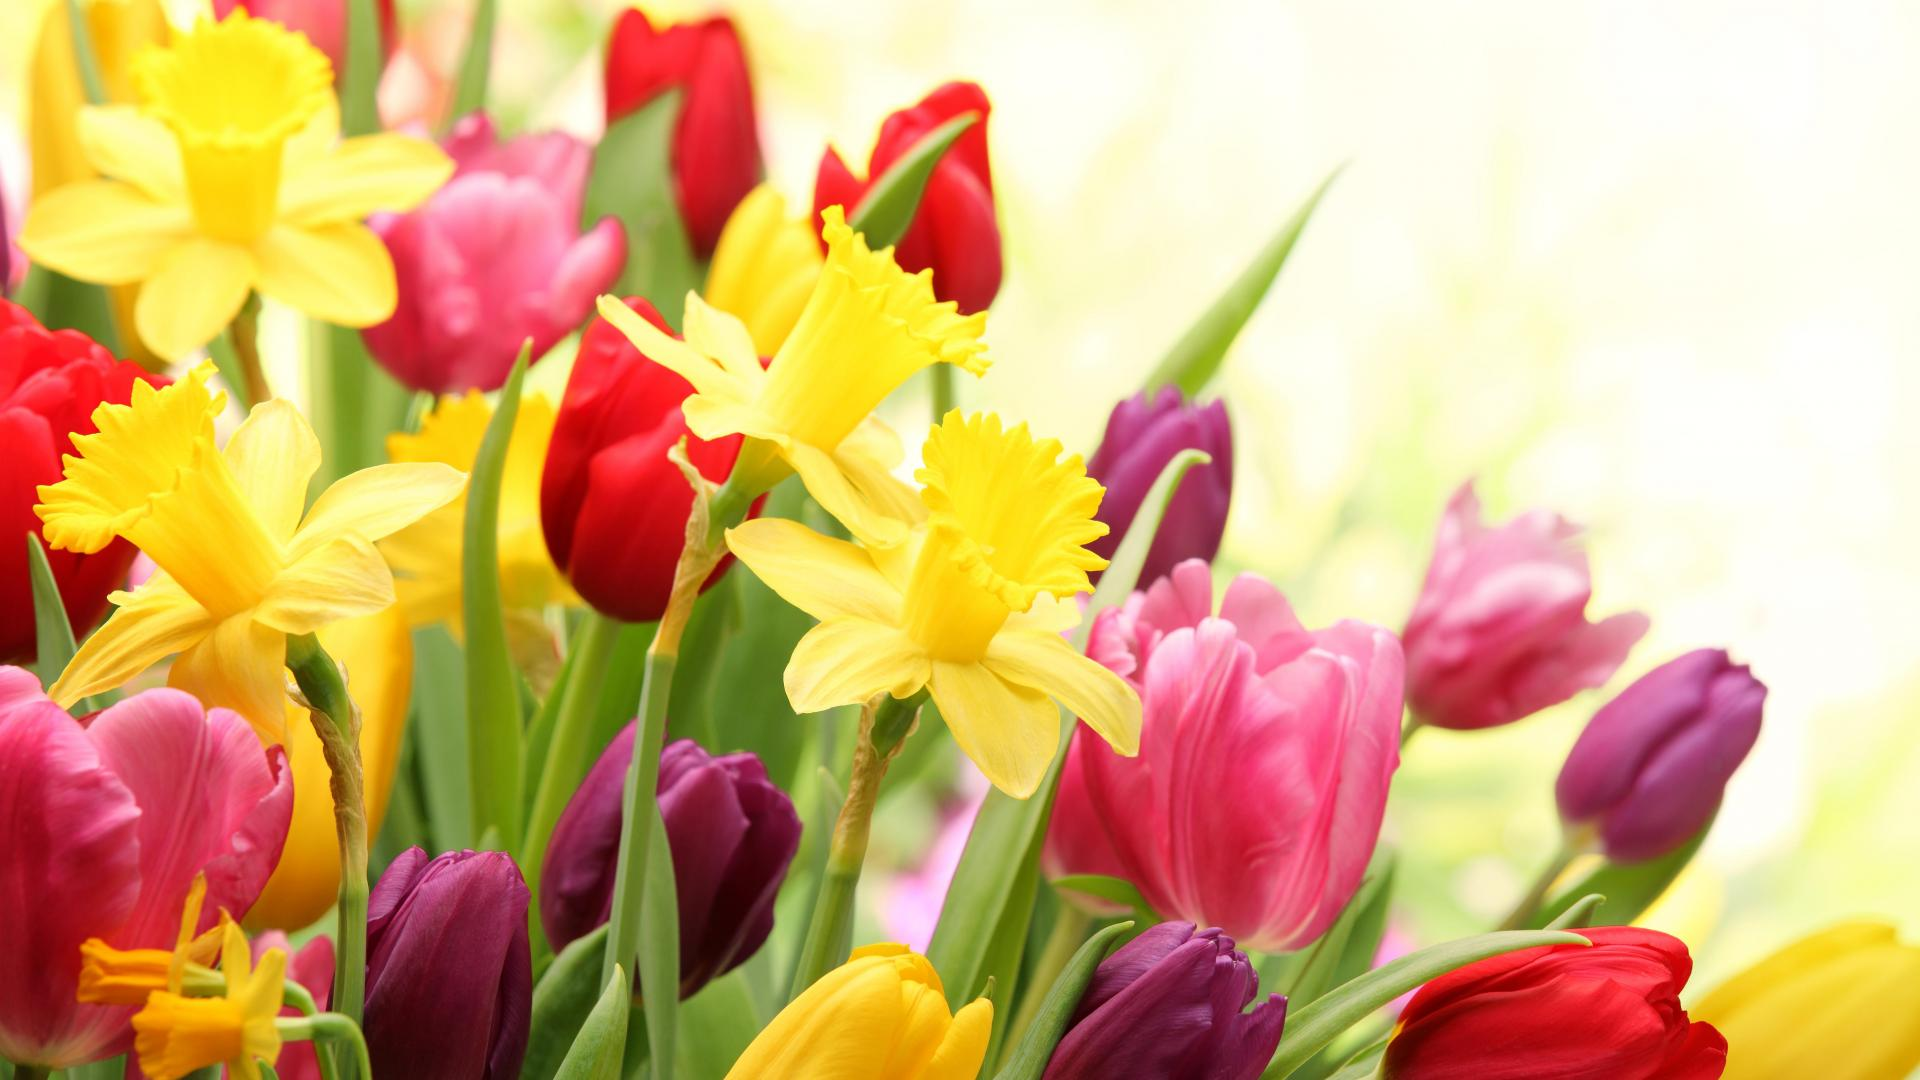 Spring Tulips Colorful Flowers Wallpaper Nauset Farms